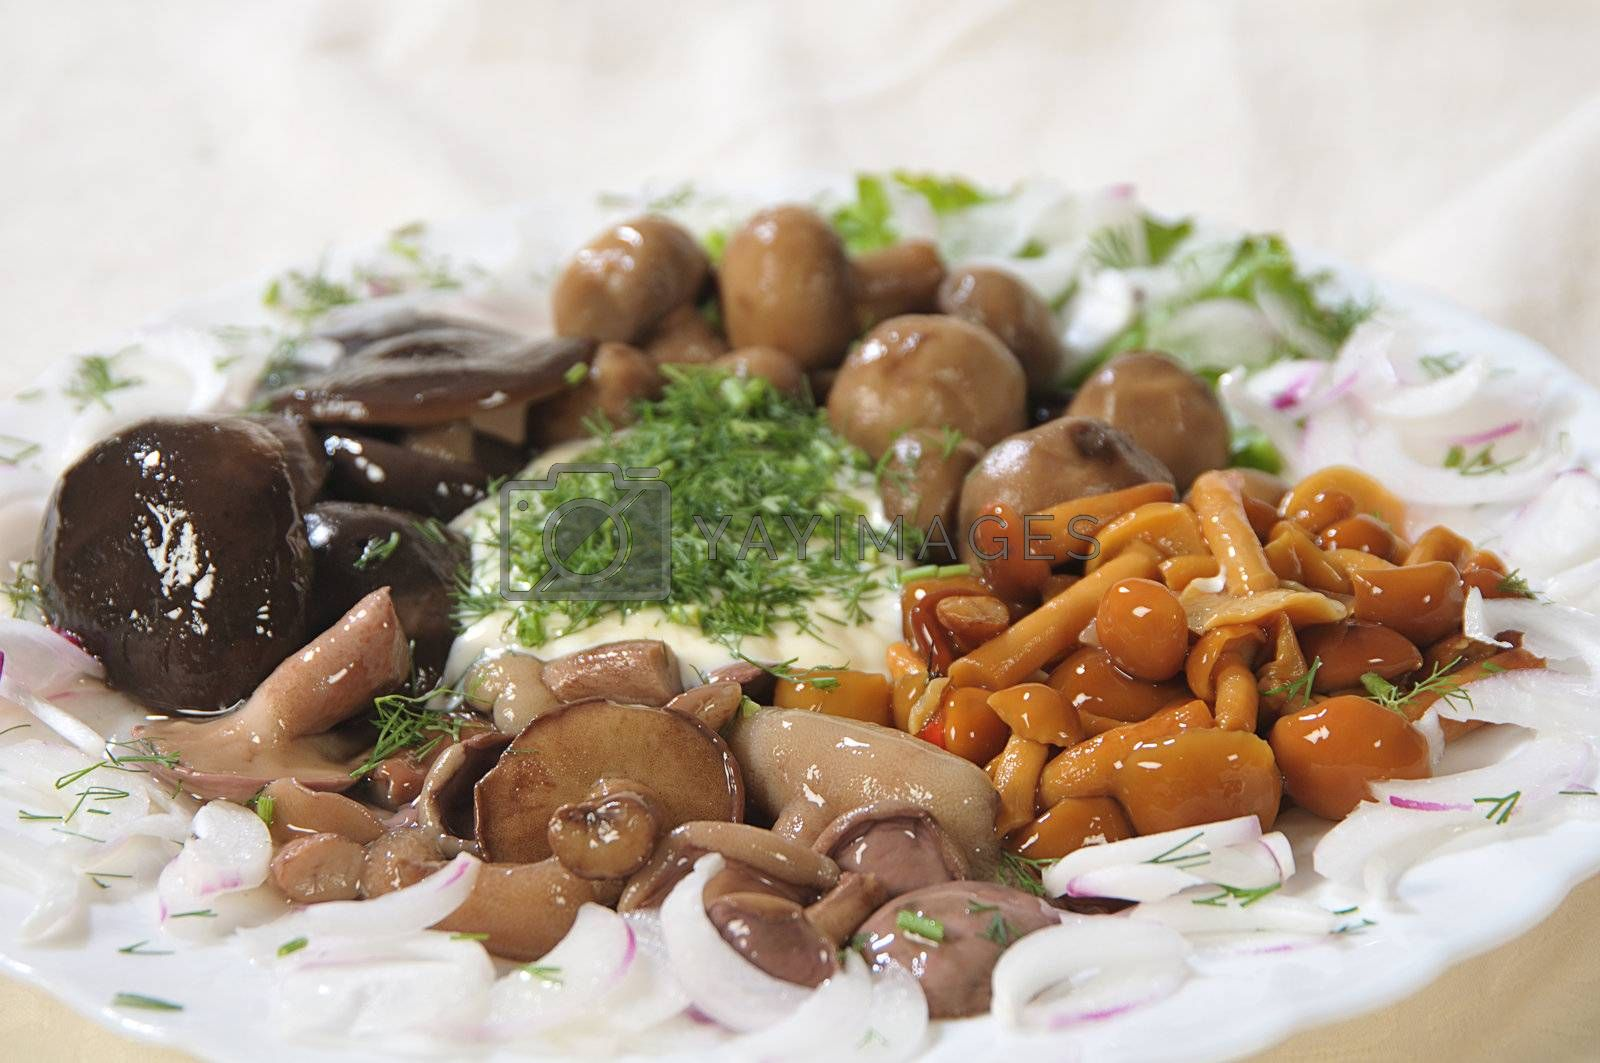 cold appetizer from a few types of the pickled mushrooms